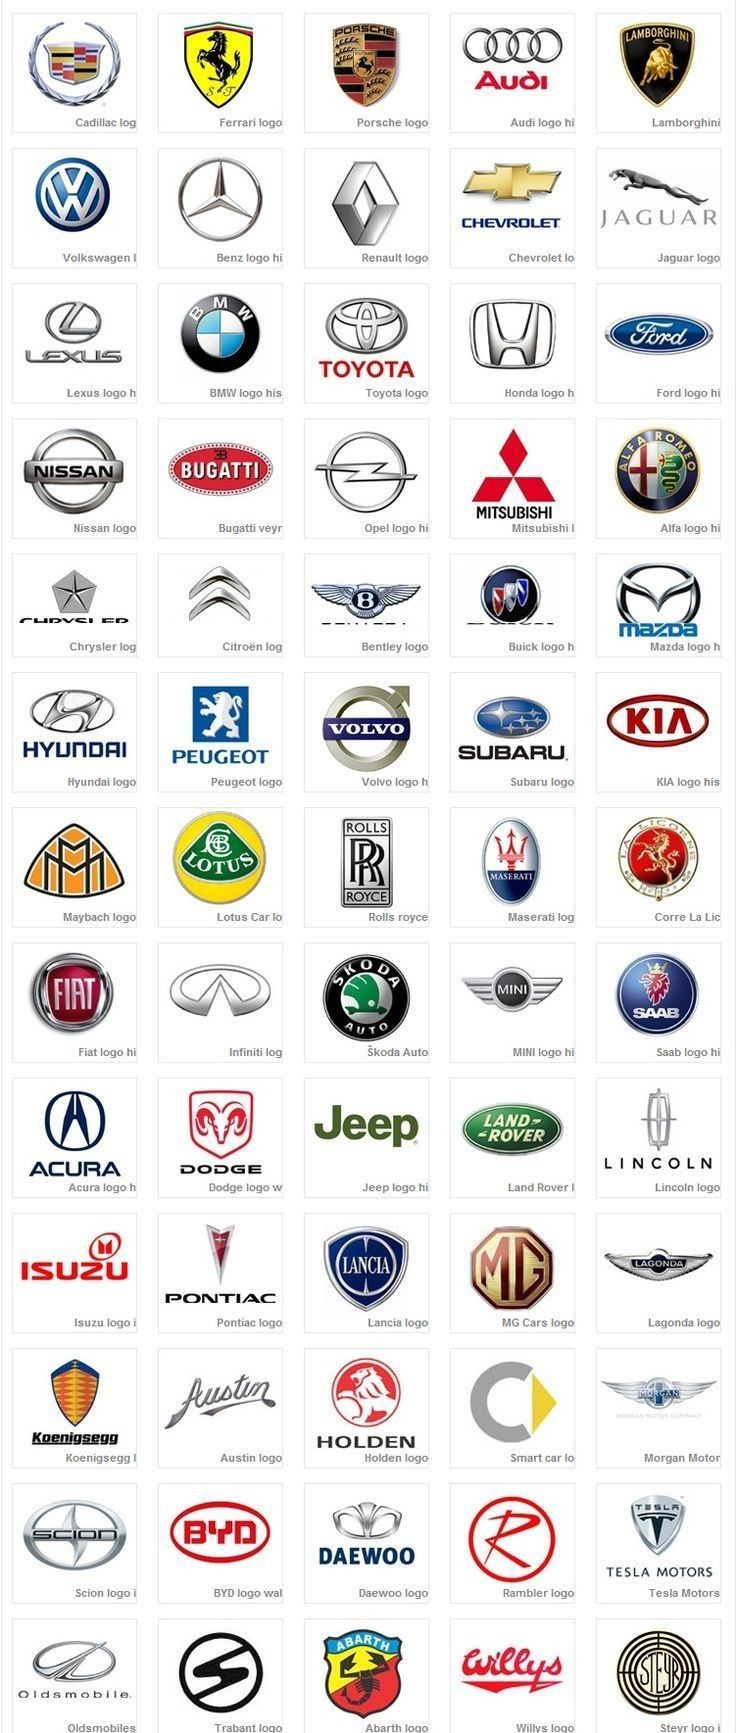 Luxury Car Symbols Why 11 Things You Should Do In Luxury Car Symbols Why Periodic Vehicle Maintenance Which Is Of In 2020 Car Brands Logos Car Symbols Car Brands